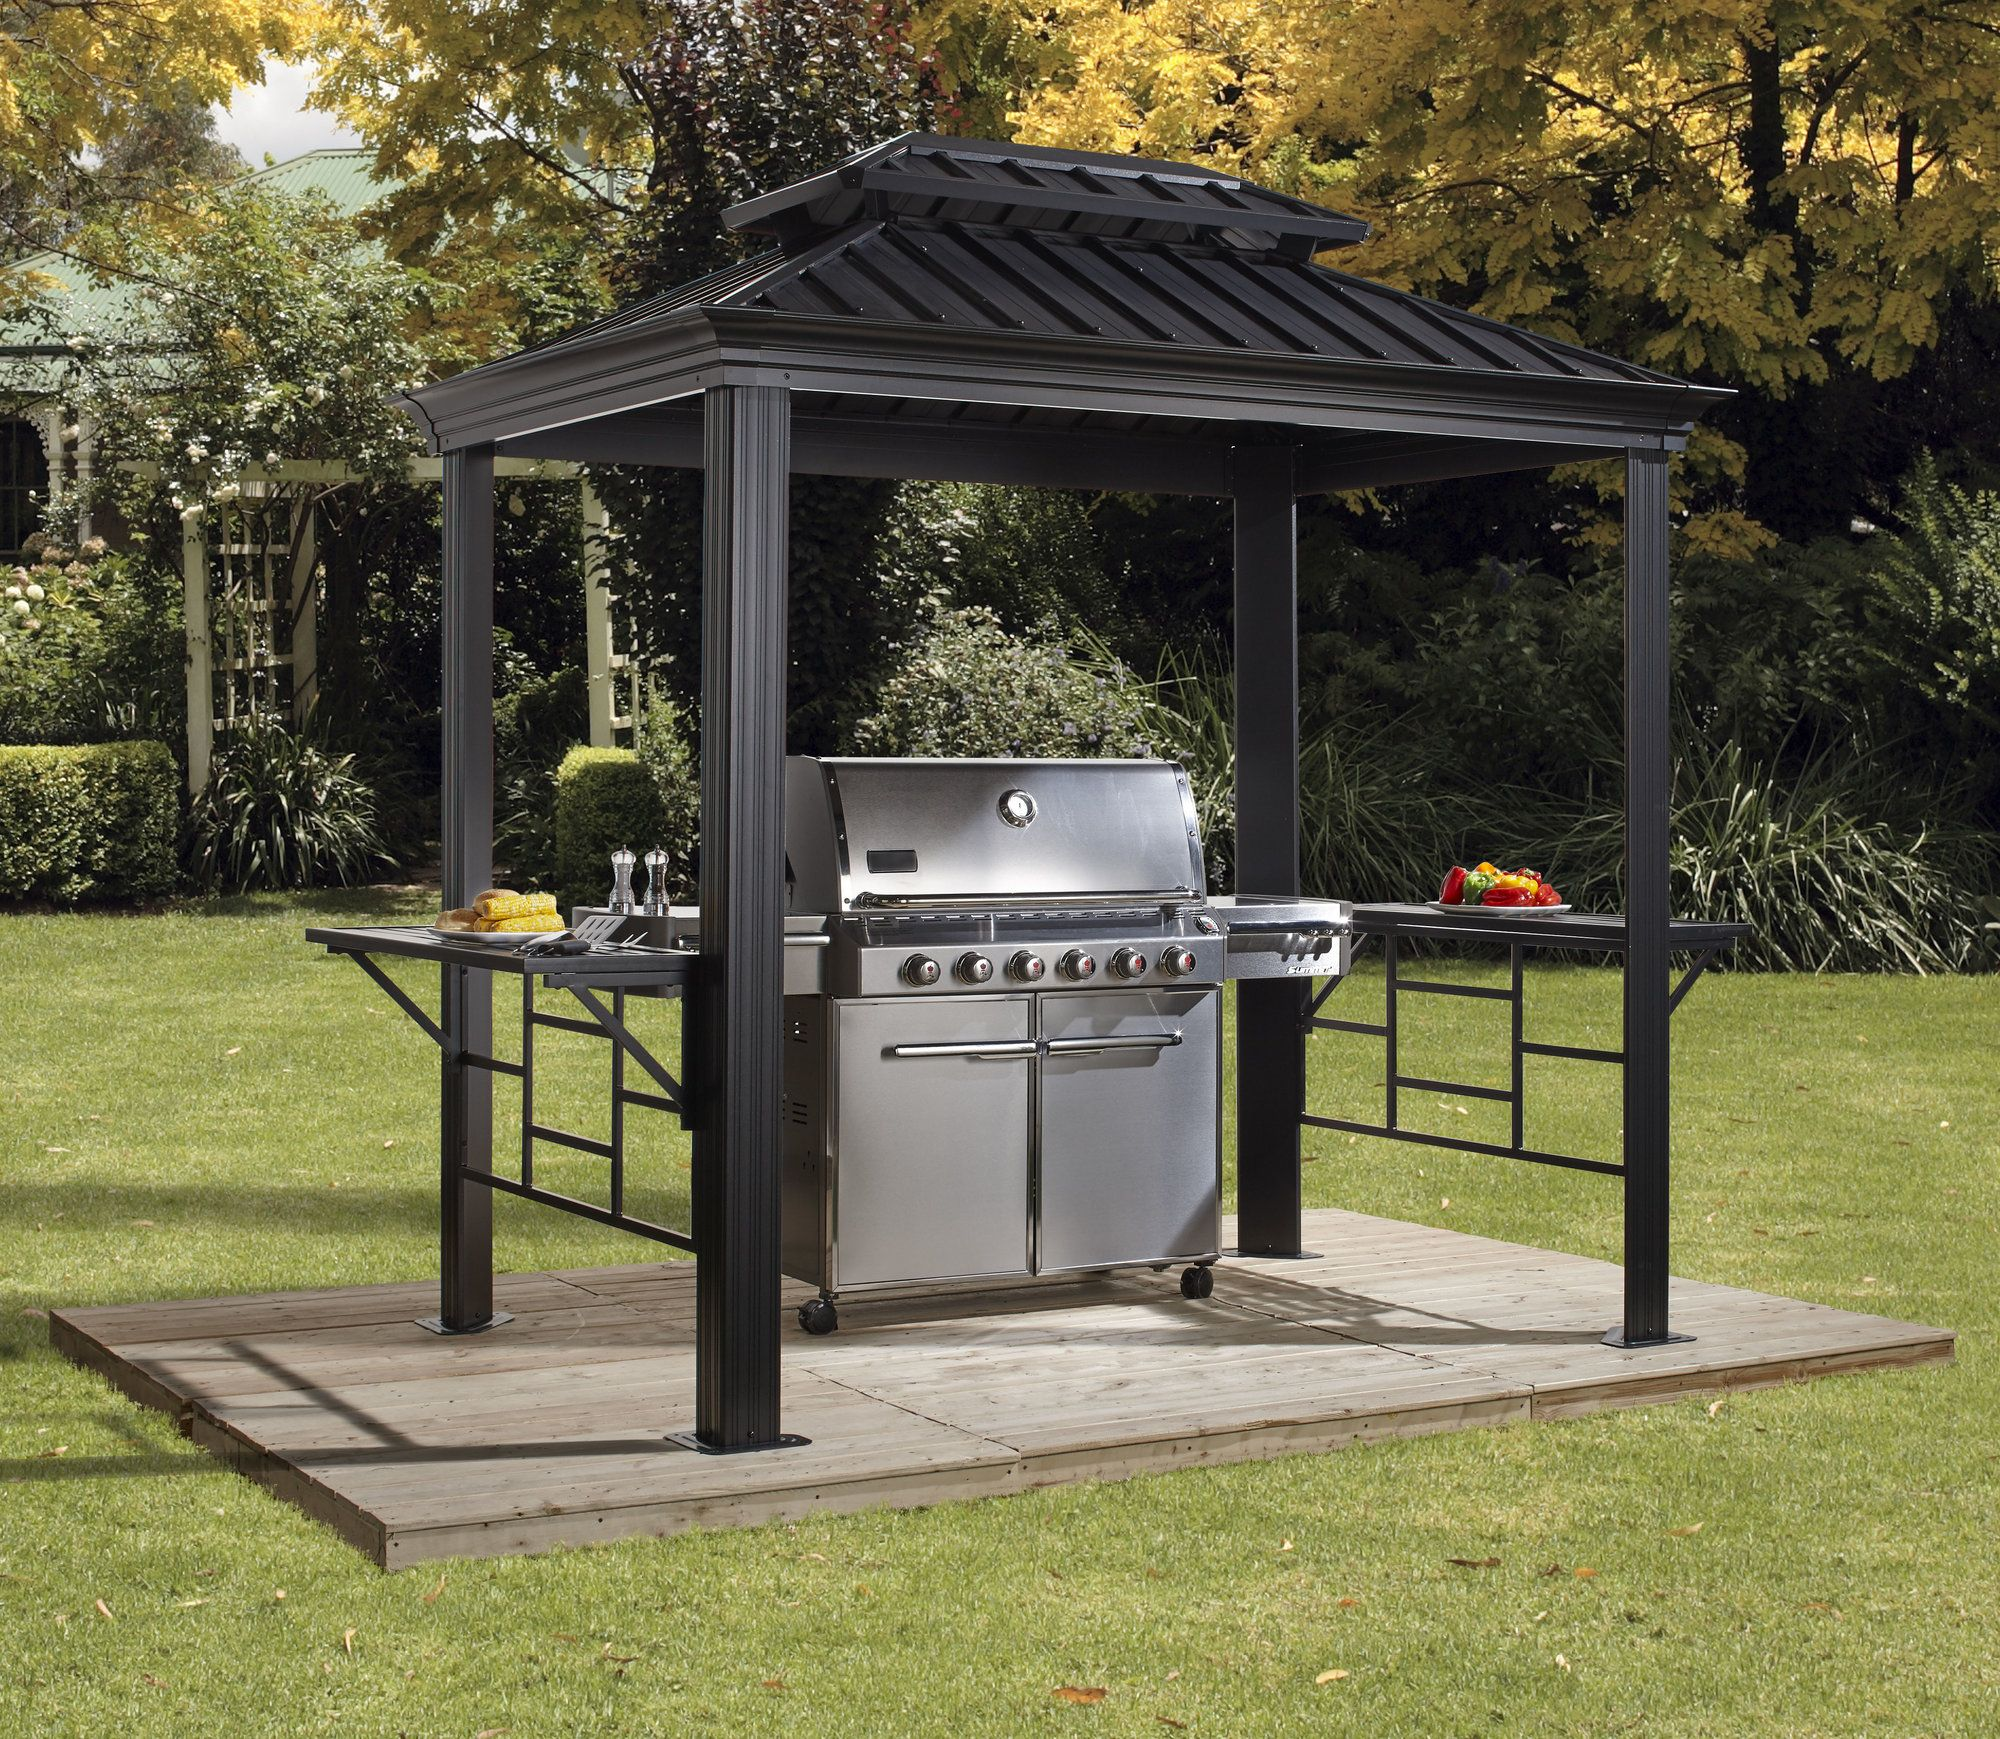 Bbq Messina 6 Ft W X 8 Ft D Metal Grill Gazebo Patio